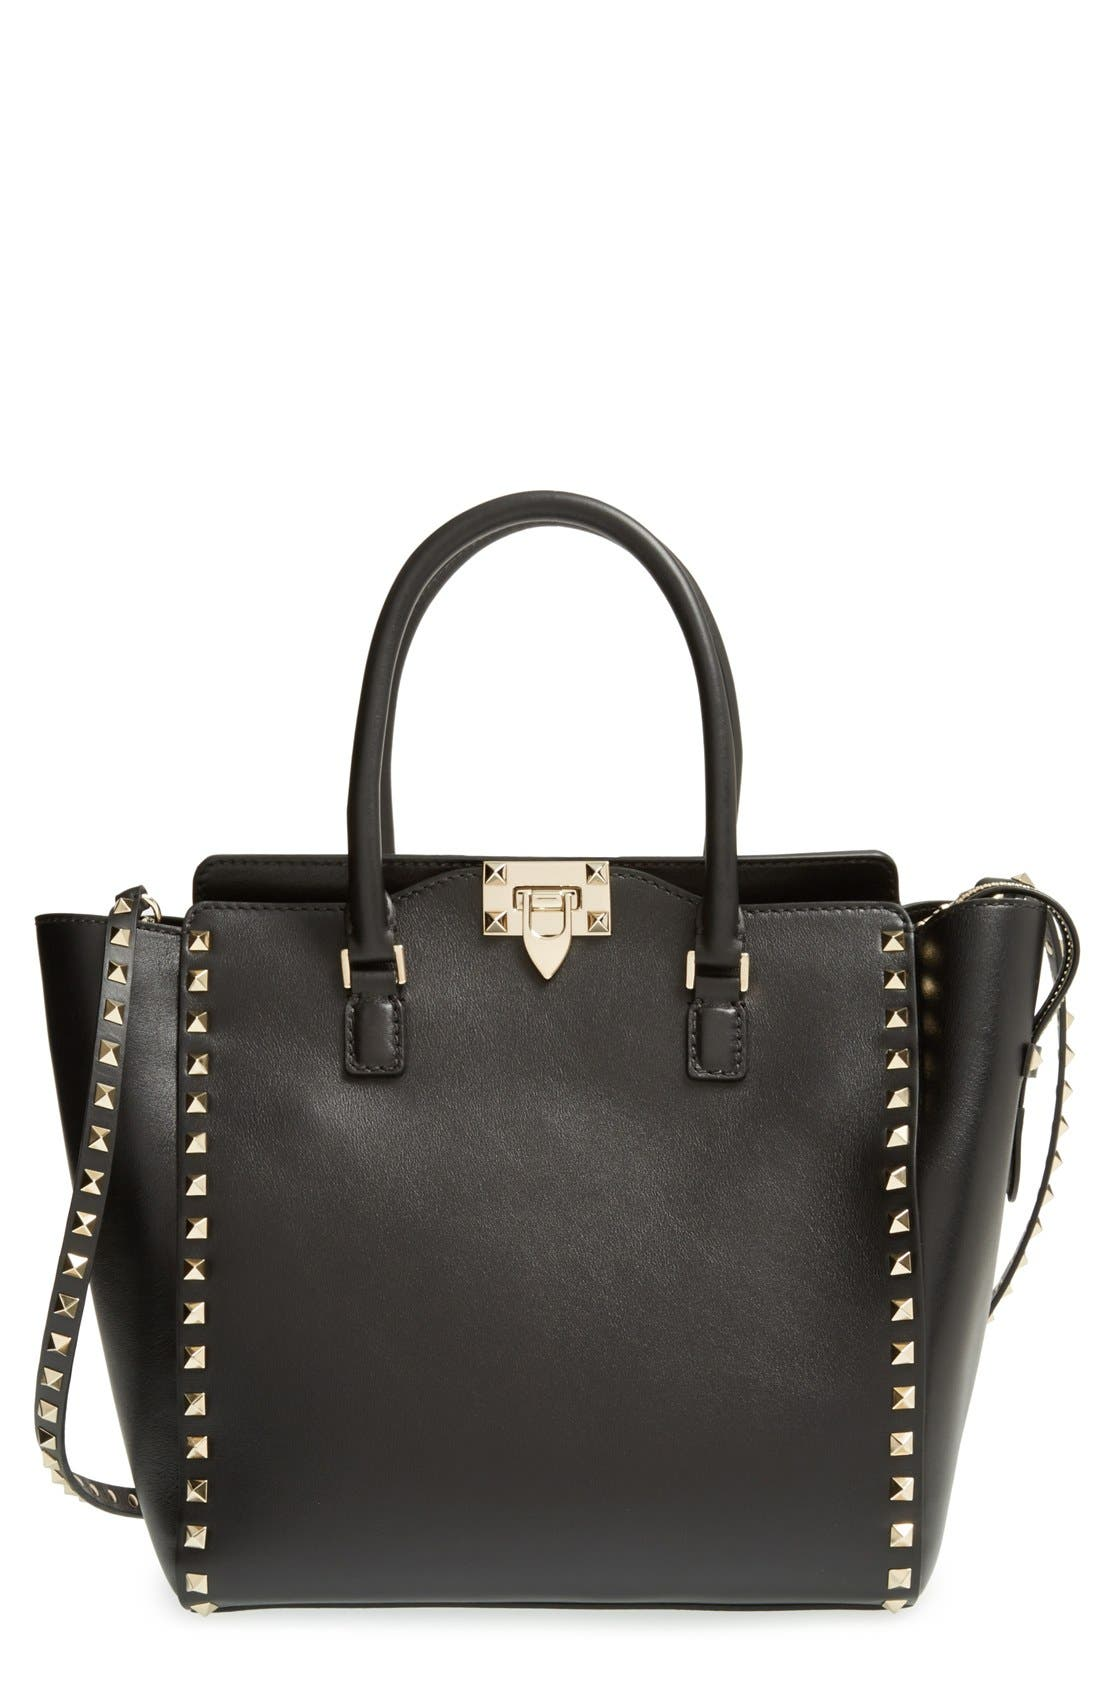 Main Image - Valentino 'Rockstud' Leather Double Handle Tote